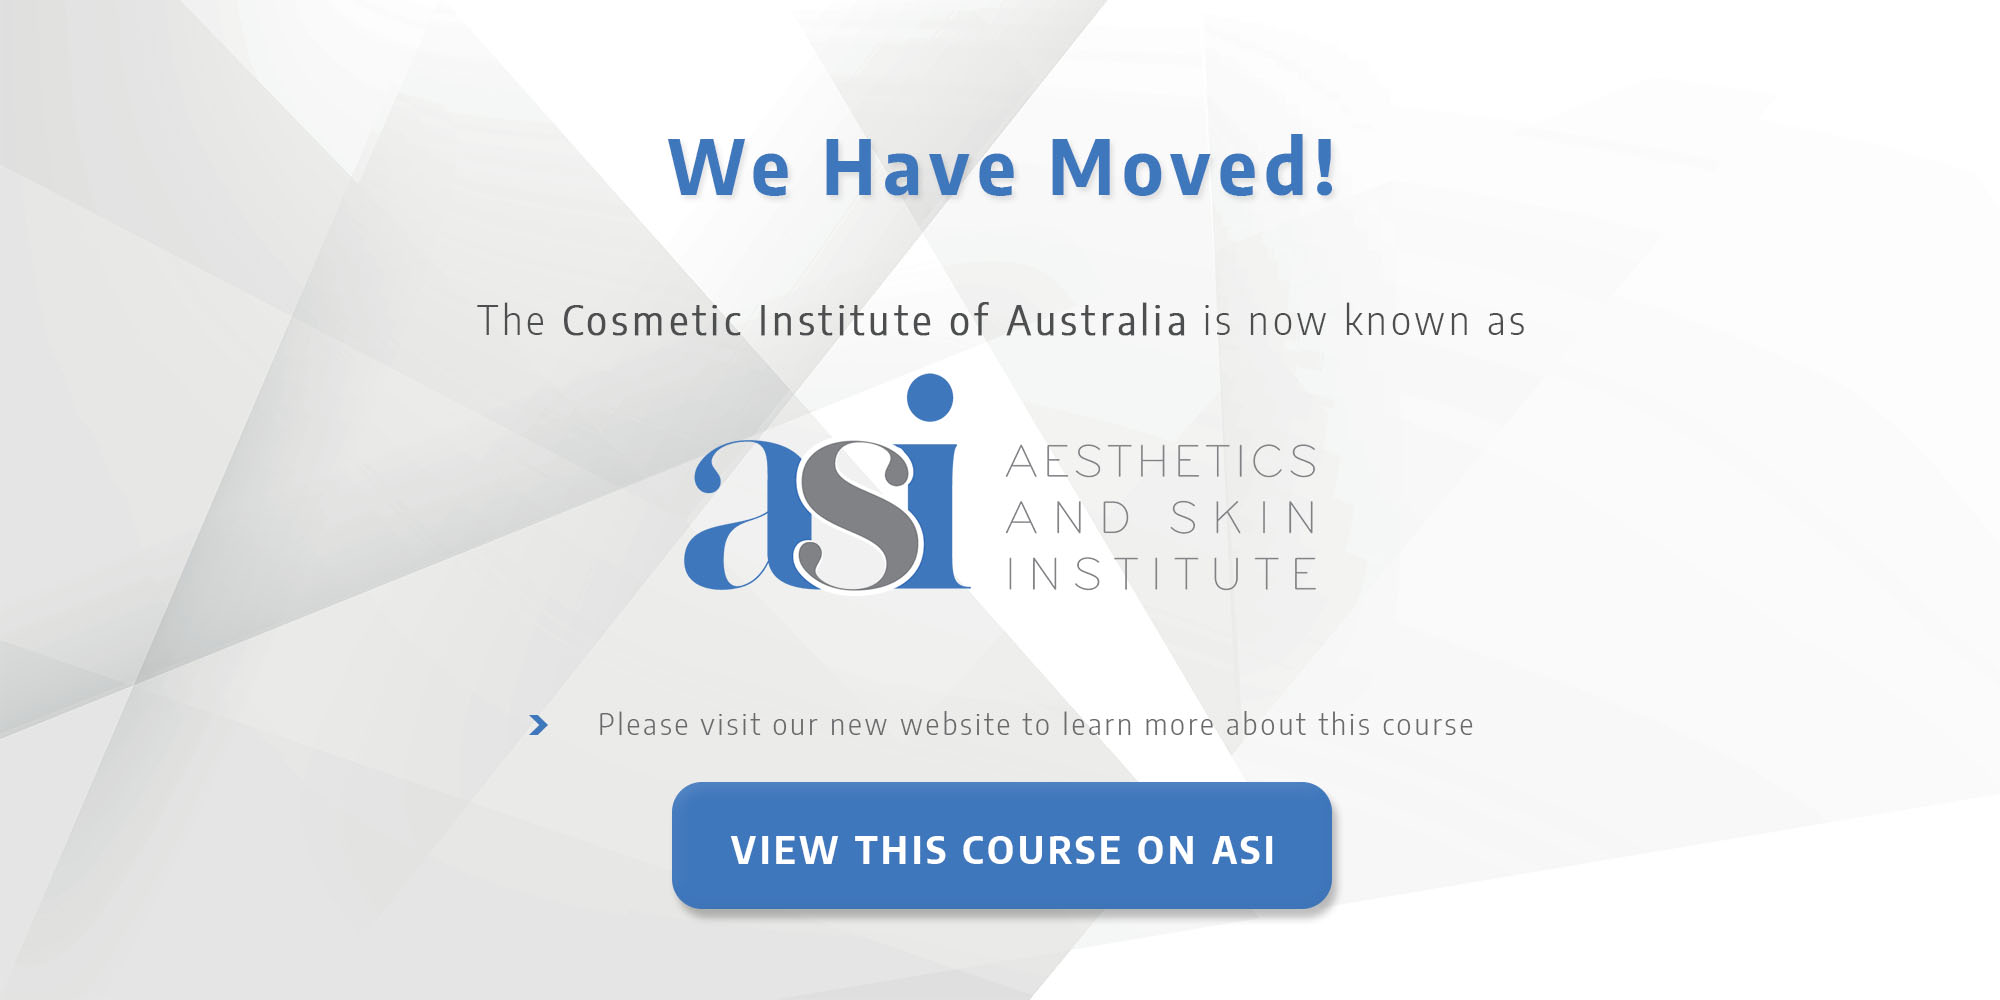 Meet the team at Aesthetics and Skin Institute